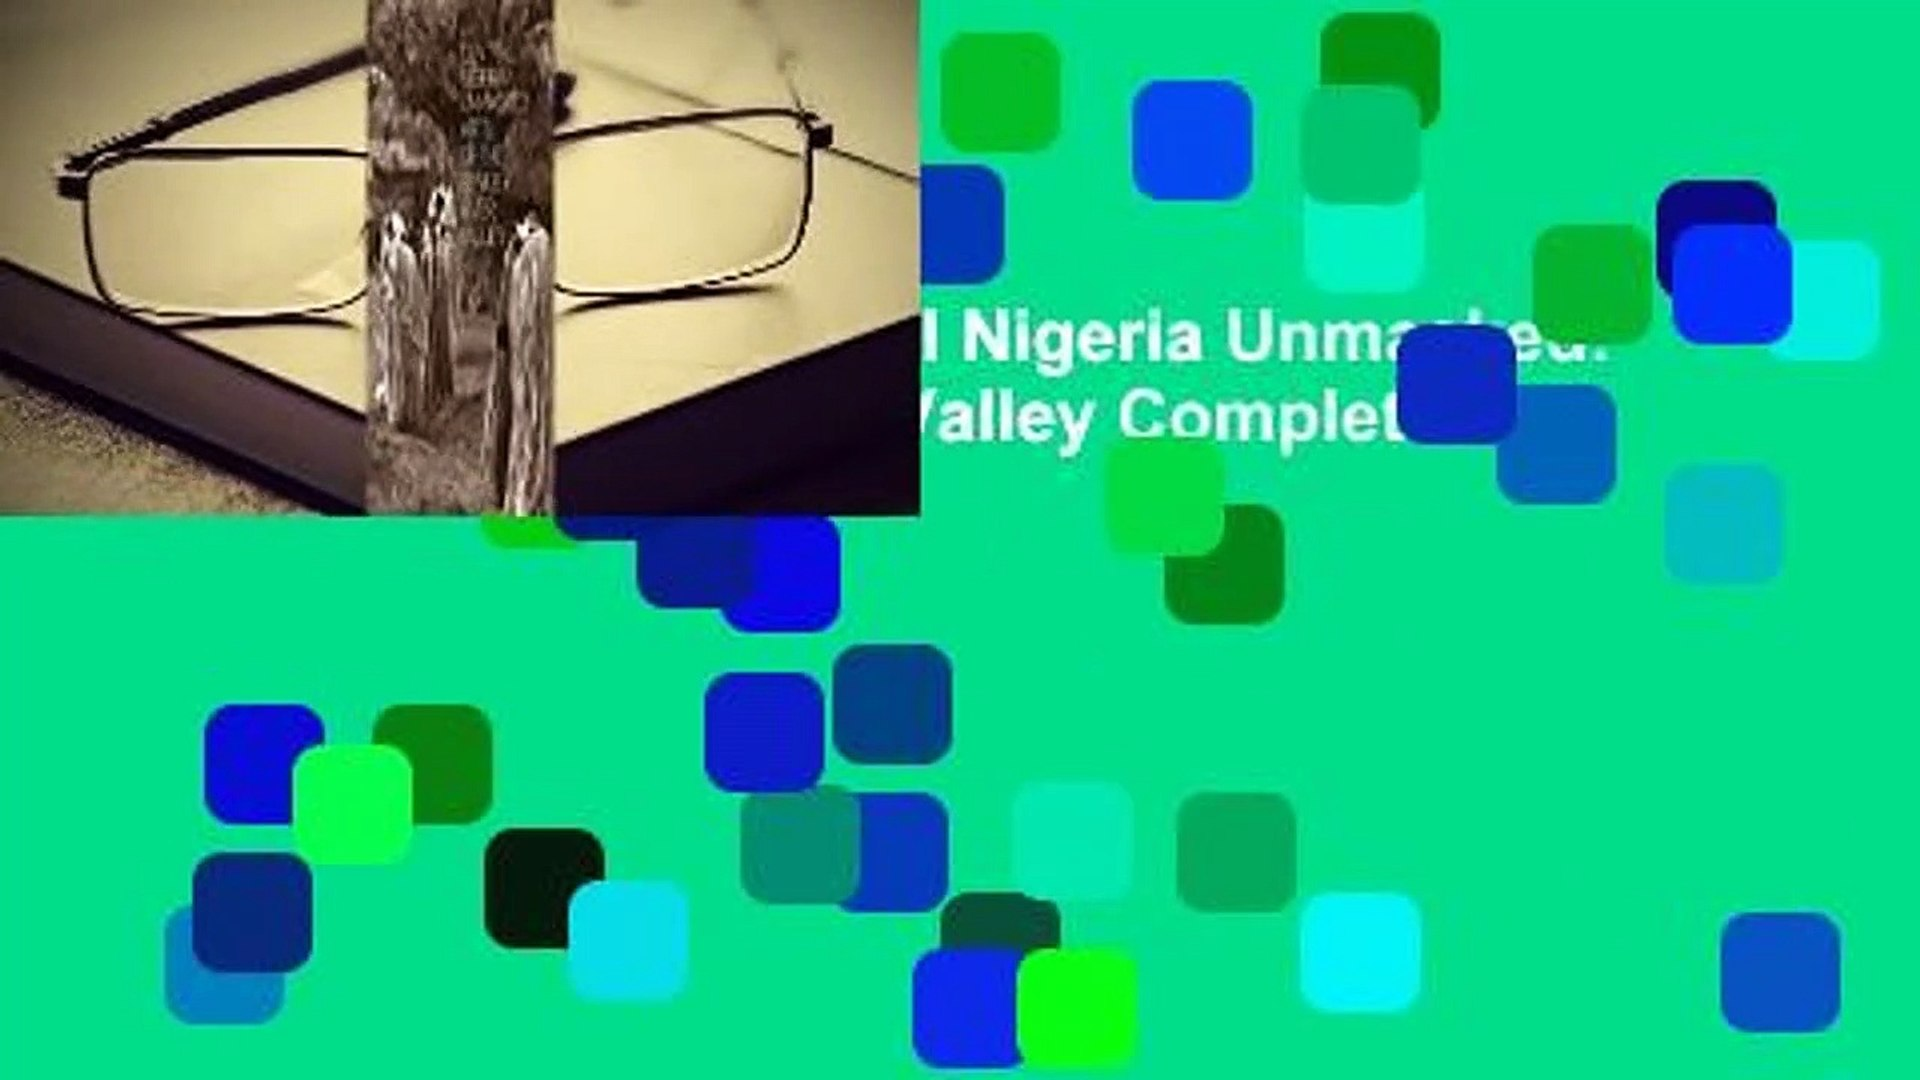 About For Books  Central Nigeria Unmasked: Arts of the Benue River Valley Complete